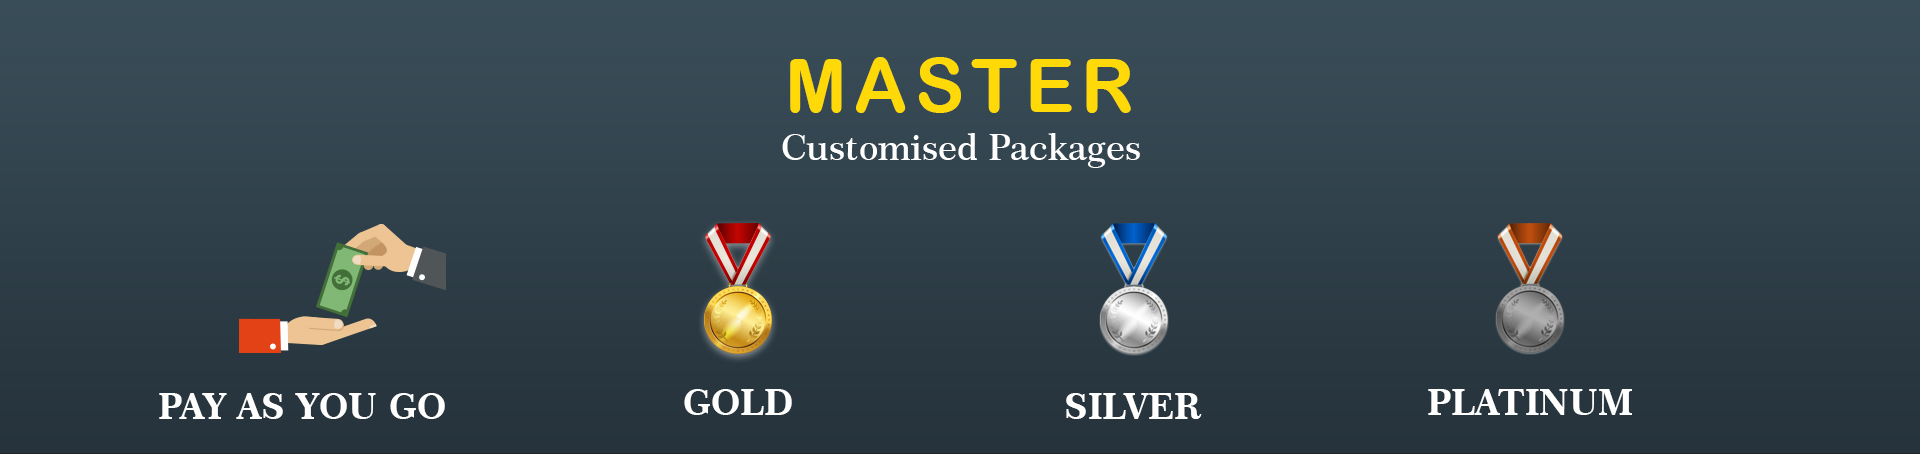 MASTER - Customised Packages_1